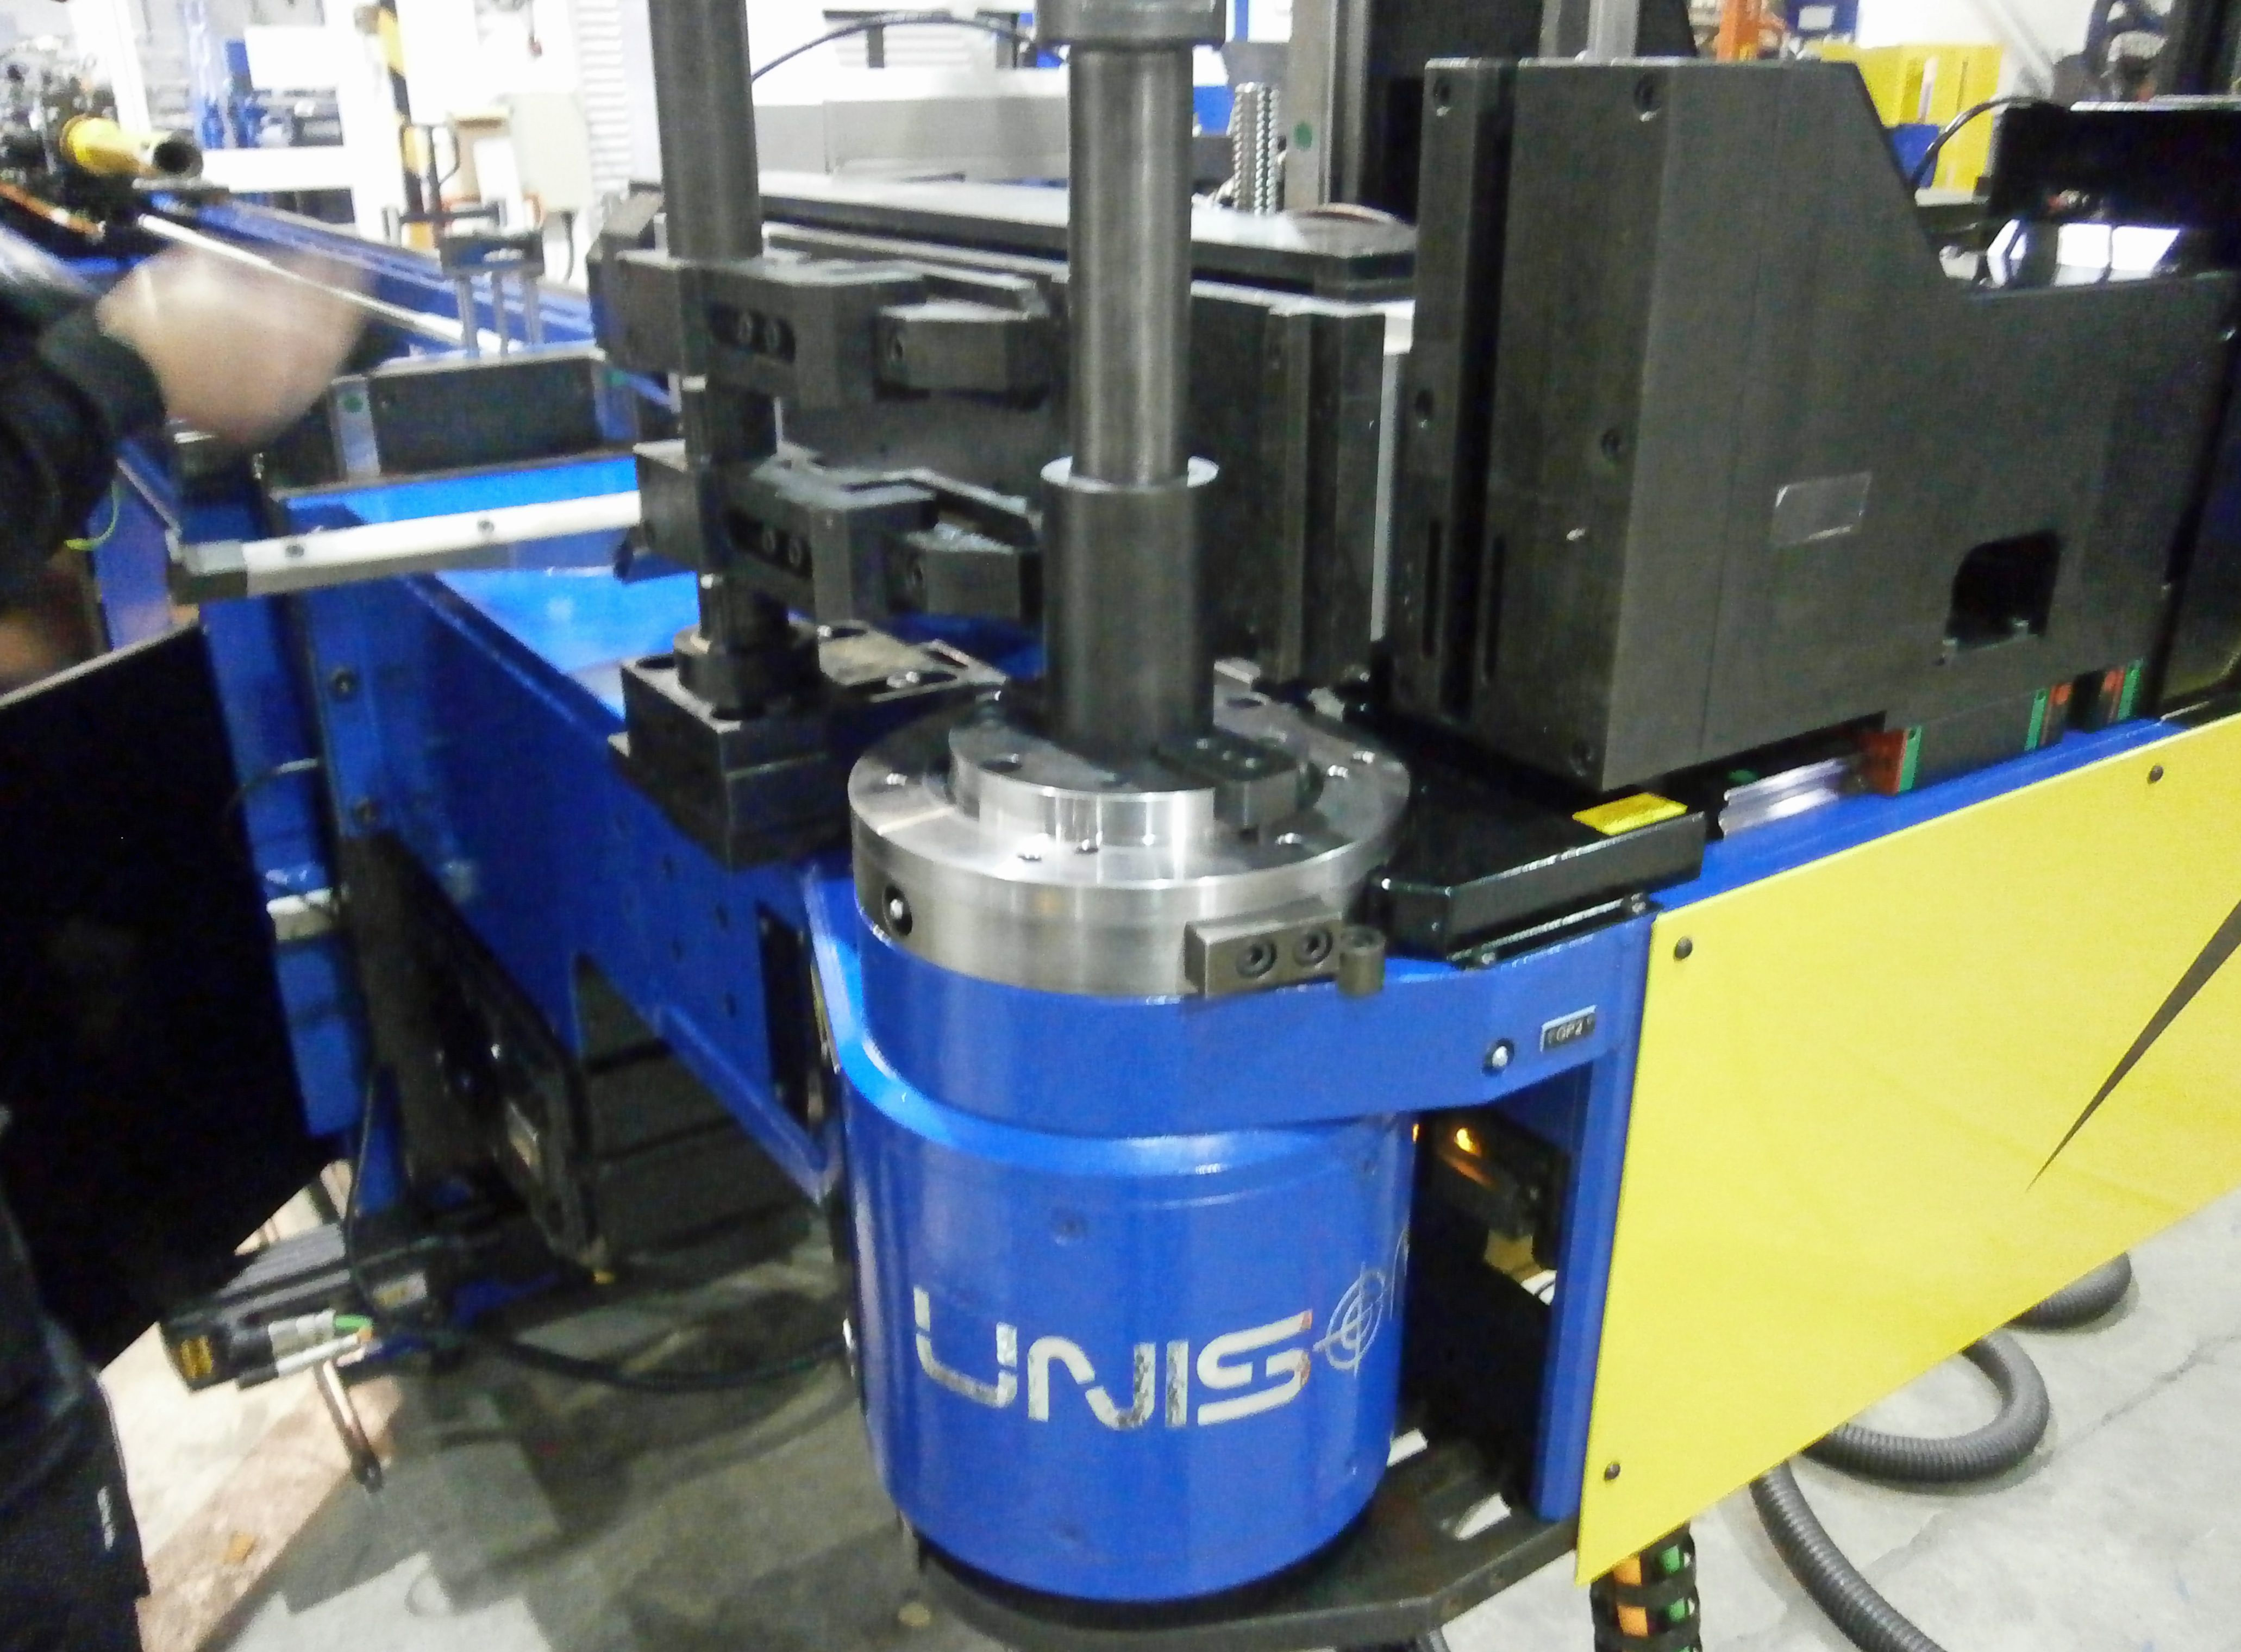 Second all-electric bending machine for pole manufacturer | Engineer ...